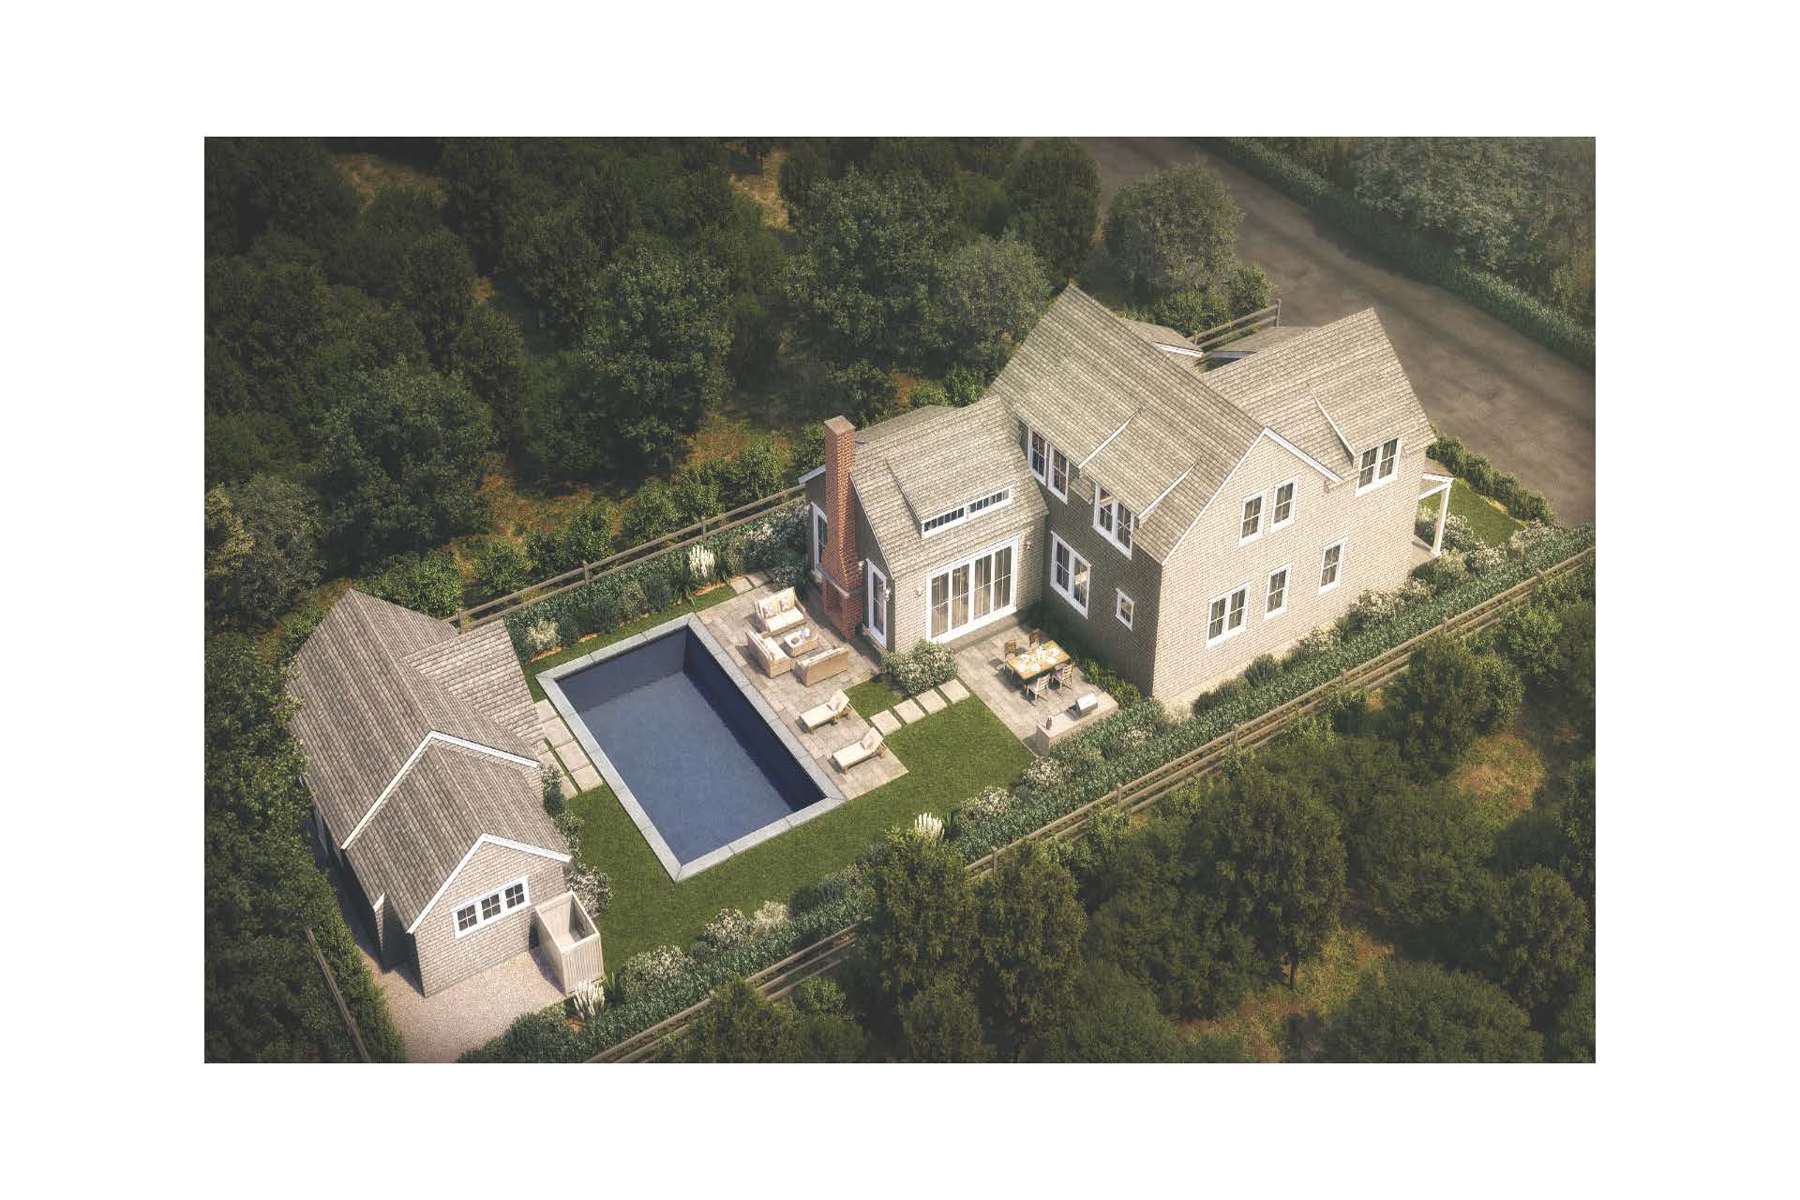 Single Family Homes for Sale at New Construction in the Heart of Nantucket's Finest Offerings! 8 Highland Avenue Nantucket, Massachusetts 02554 United States